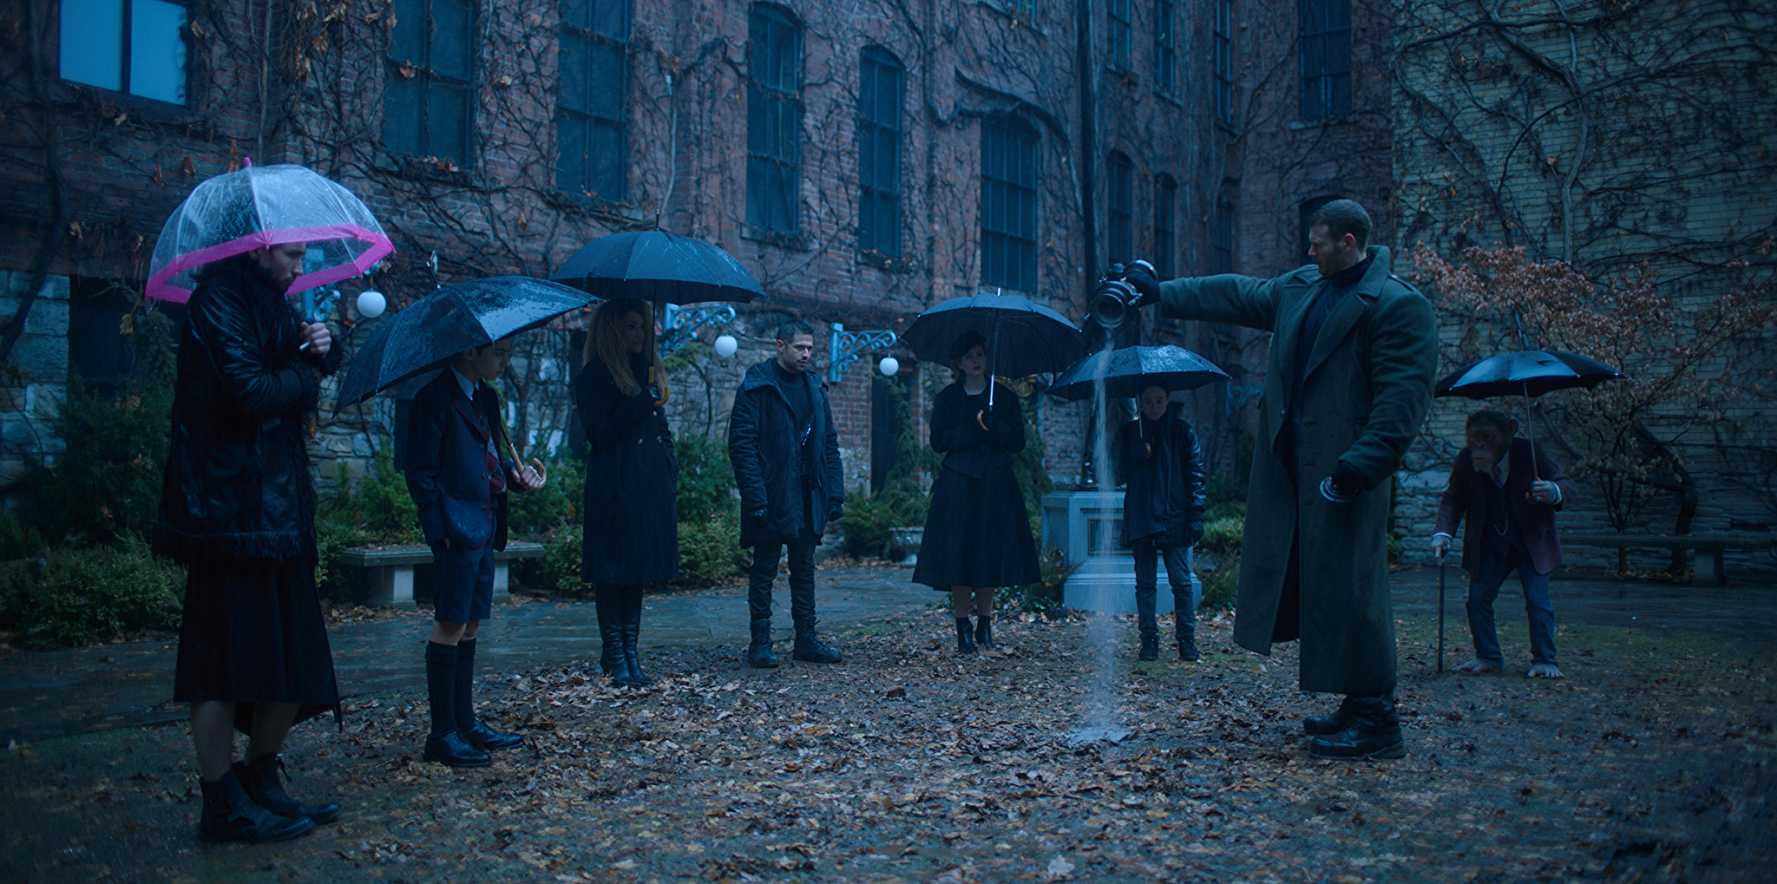 The Academy saying a last goodbye to their adoptive father in 'The Umbrella Academy'. (Source: IMDB)